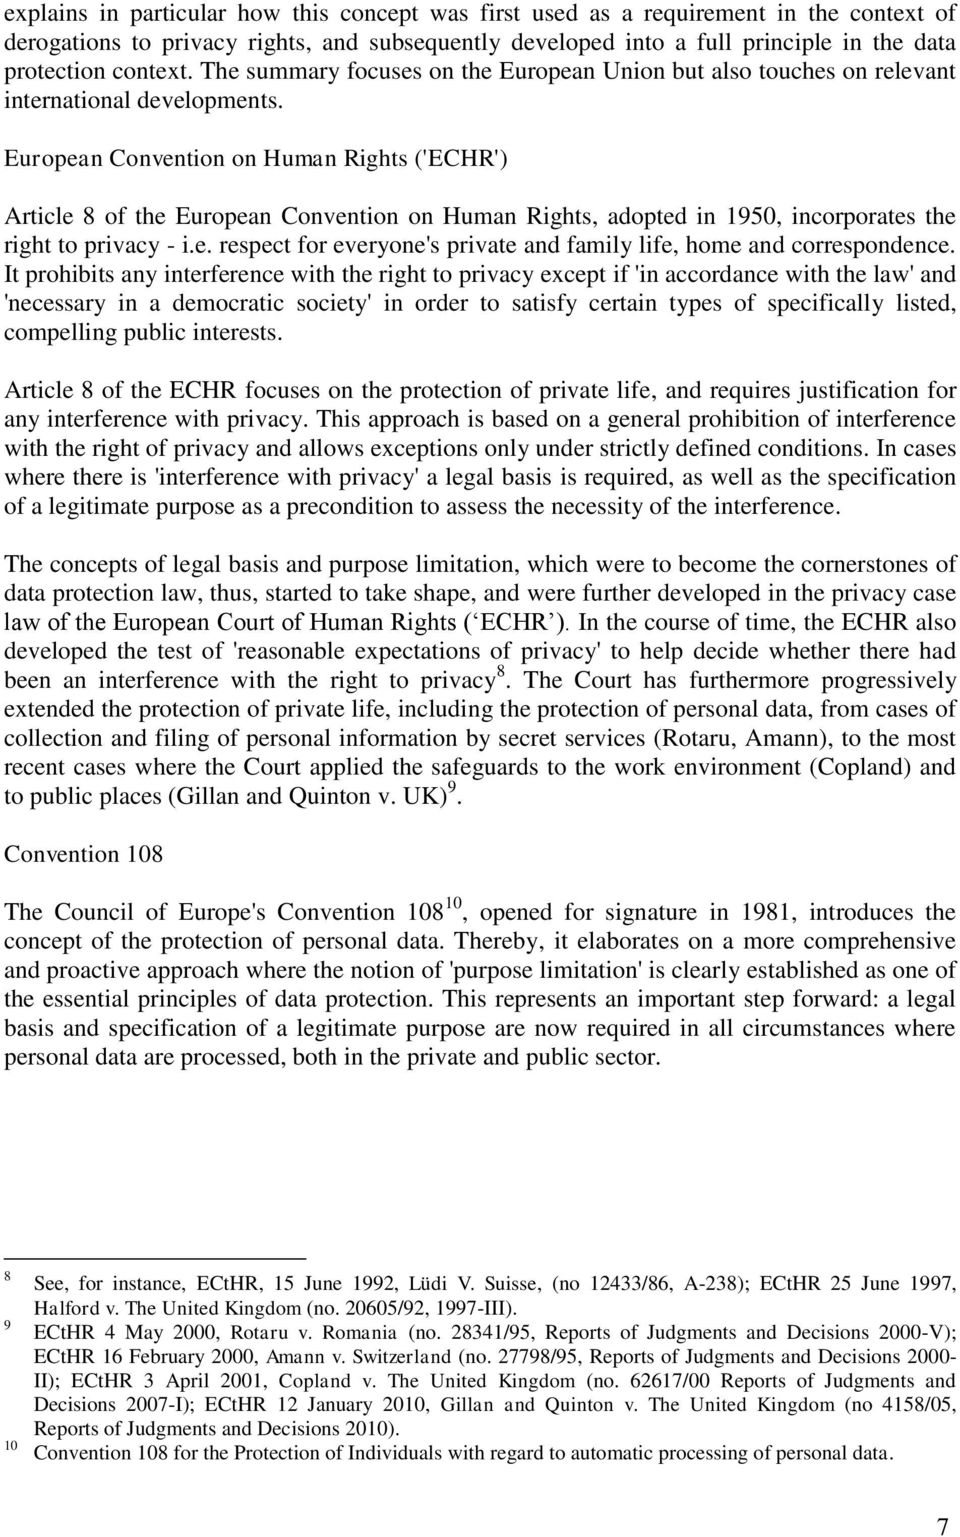 European Convention on Human Rights ('ECHR') Article 8 of the European Convention on Human Rights, adopted in 1950, incorporates the right to privacy - i.e. respect for everyone's private and family life, home and correspondence.